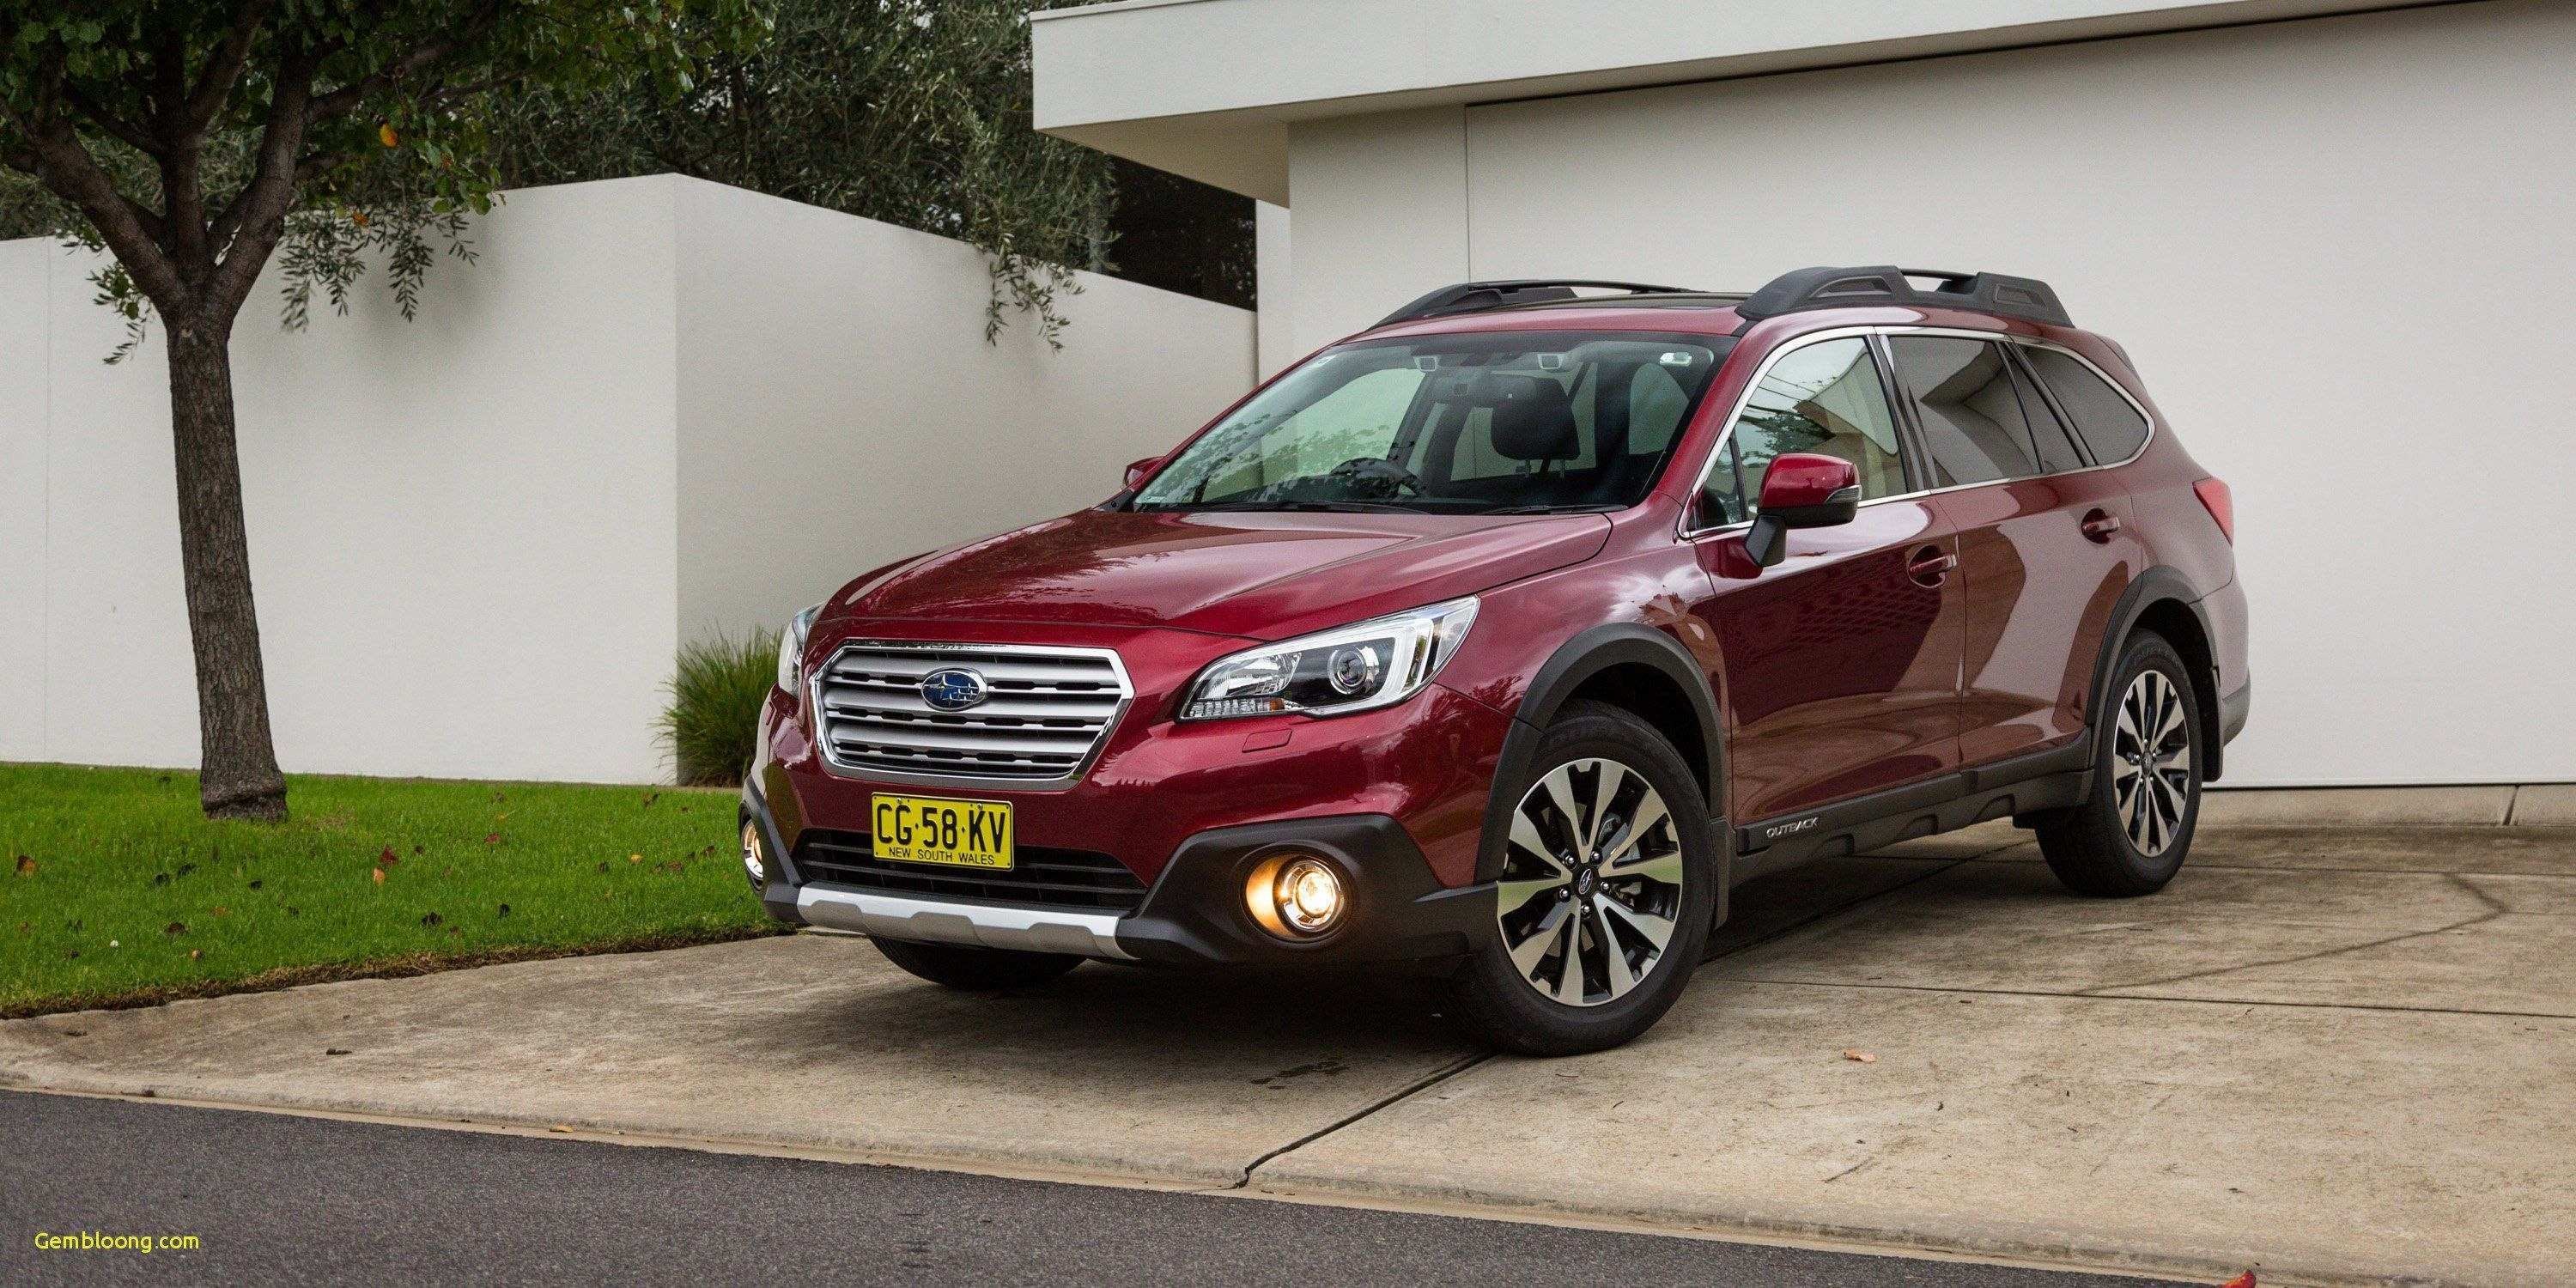 63 The Best 2019 Subaru Outback Turbo Hybrid Redesign And Concept